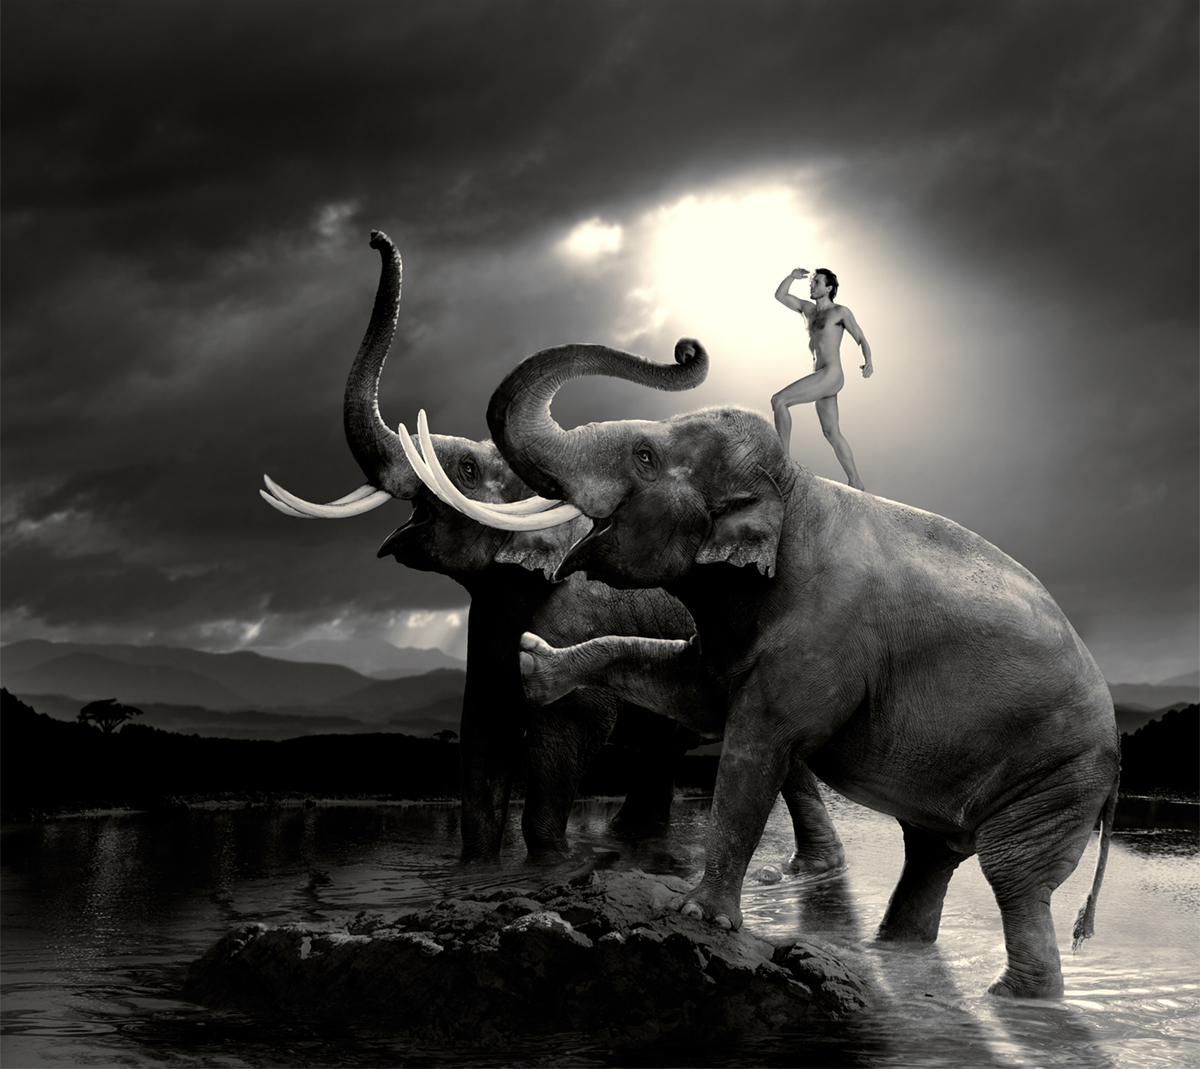 nude man standing on an elephant